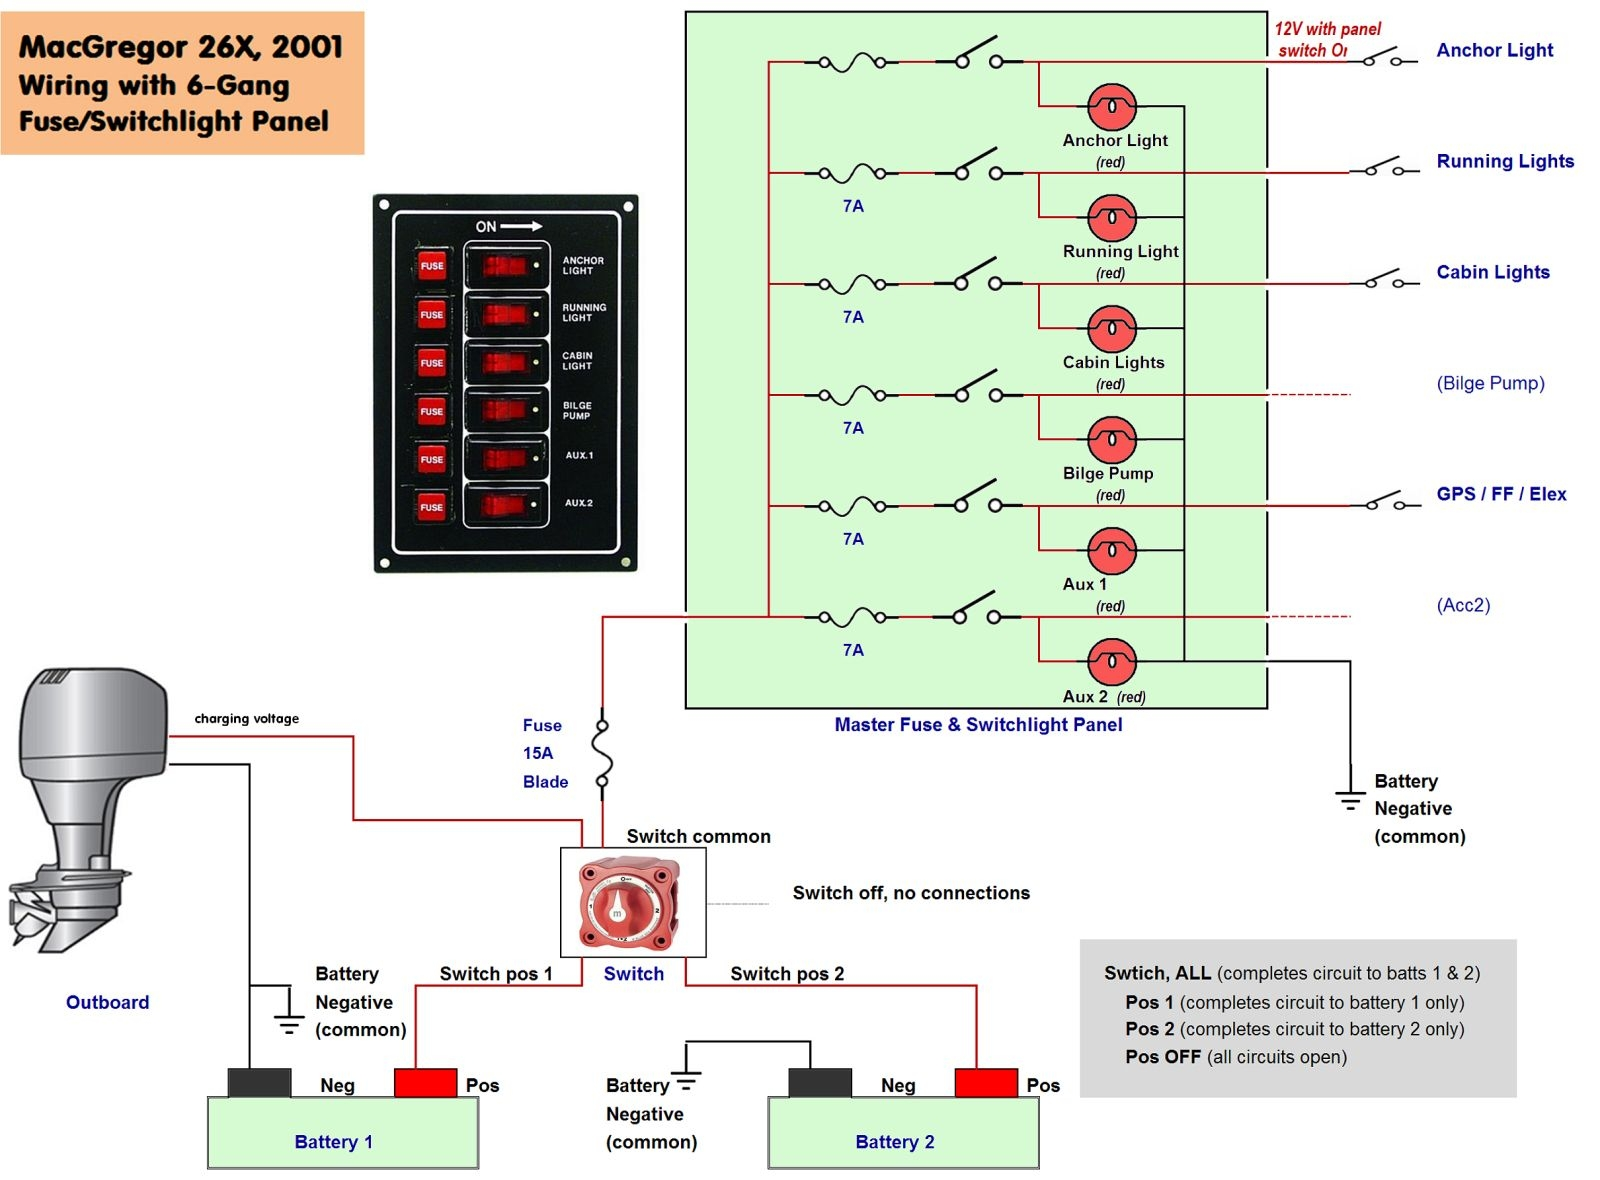 boat dock wiring diagram Collection-Boat Wiring Diagram 6-r